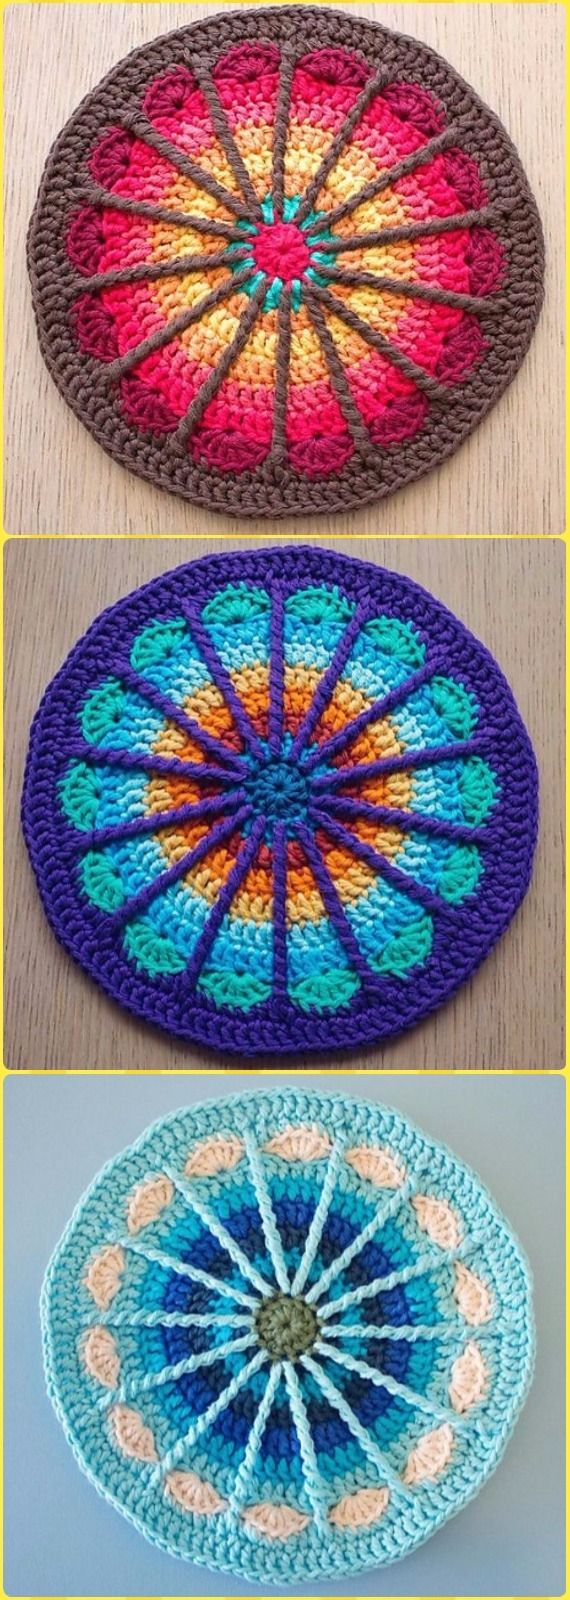 Crochet Spoke Mandala Potholder Free Pattern - Crochet Pot Holder ...